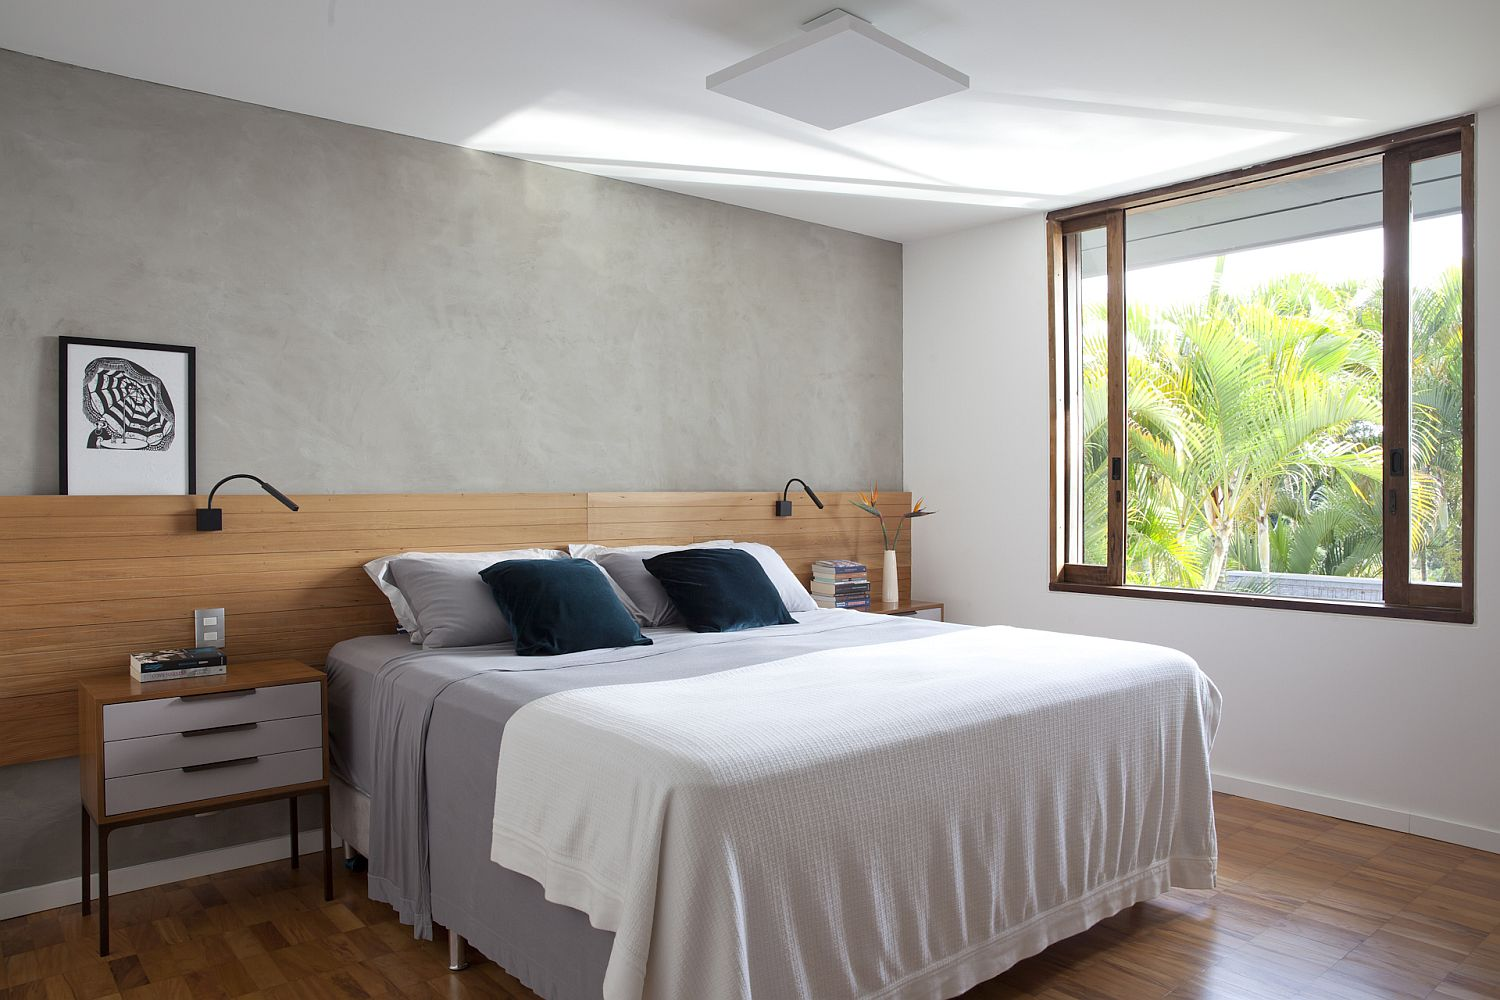 Low-ceiling of the bedroom gives it a more cozy appeal